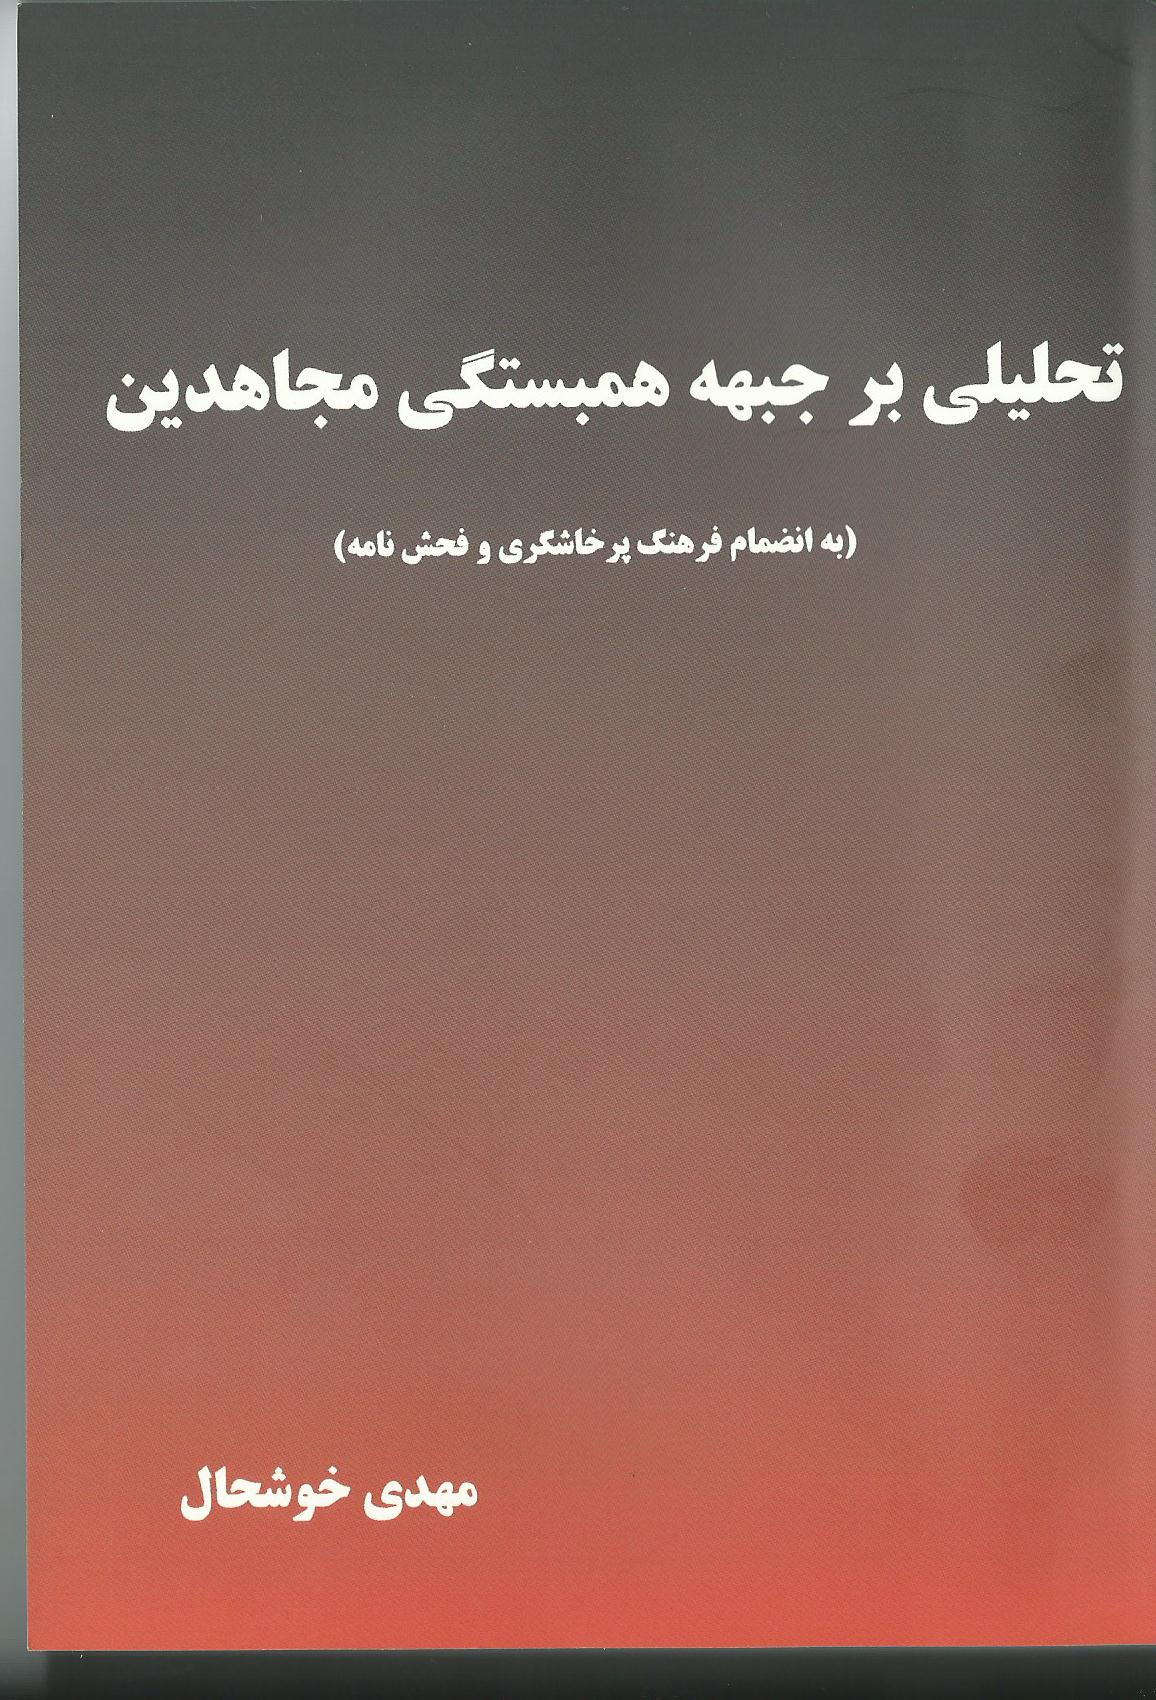 Books on Iran-Fanous.de